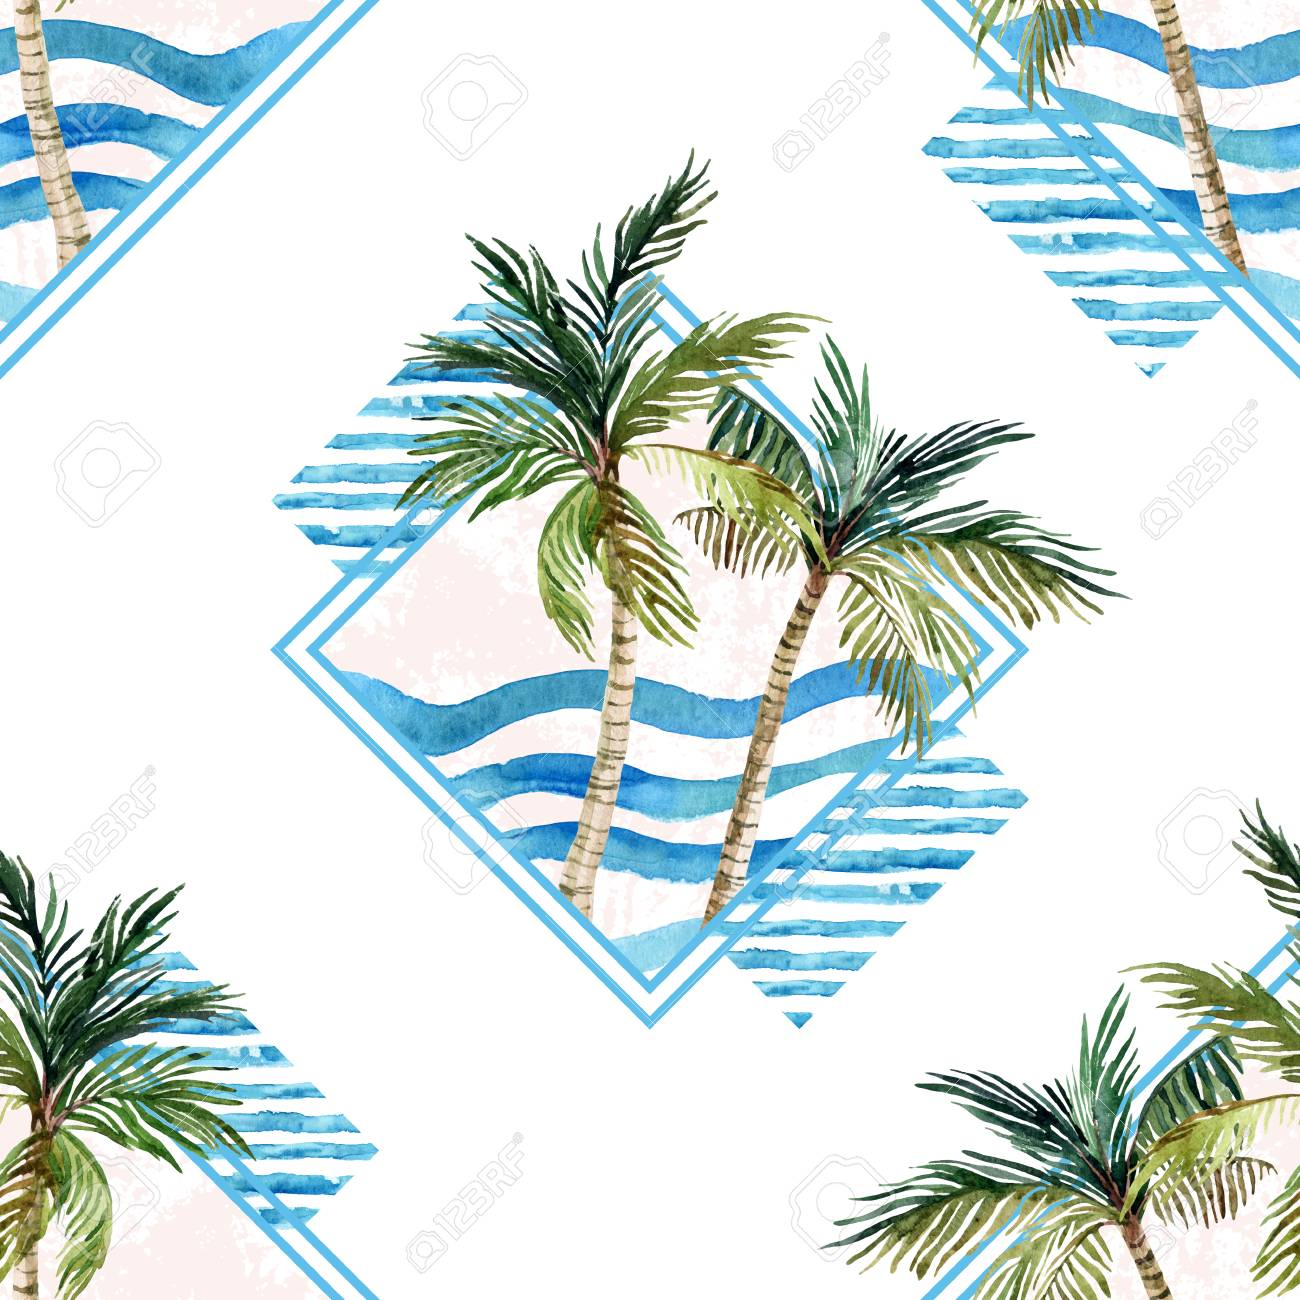 Watercolor Palm Tree Print In Geometric Shape On White Background